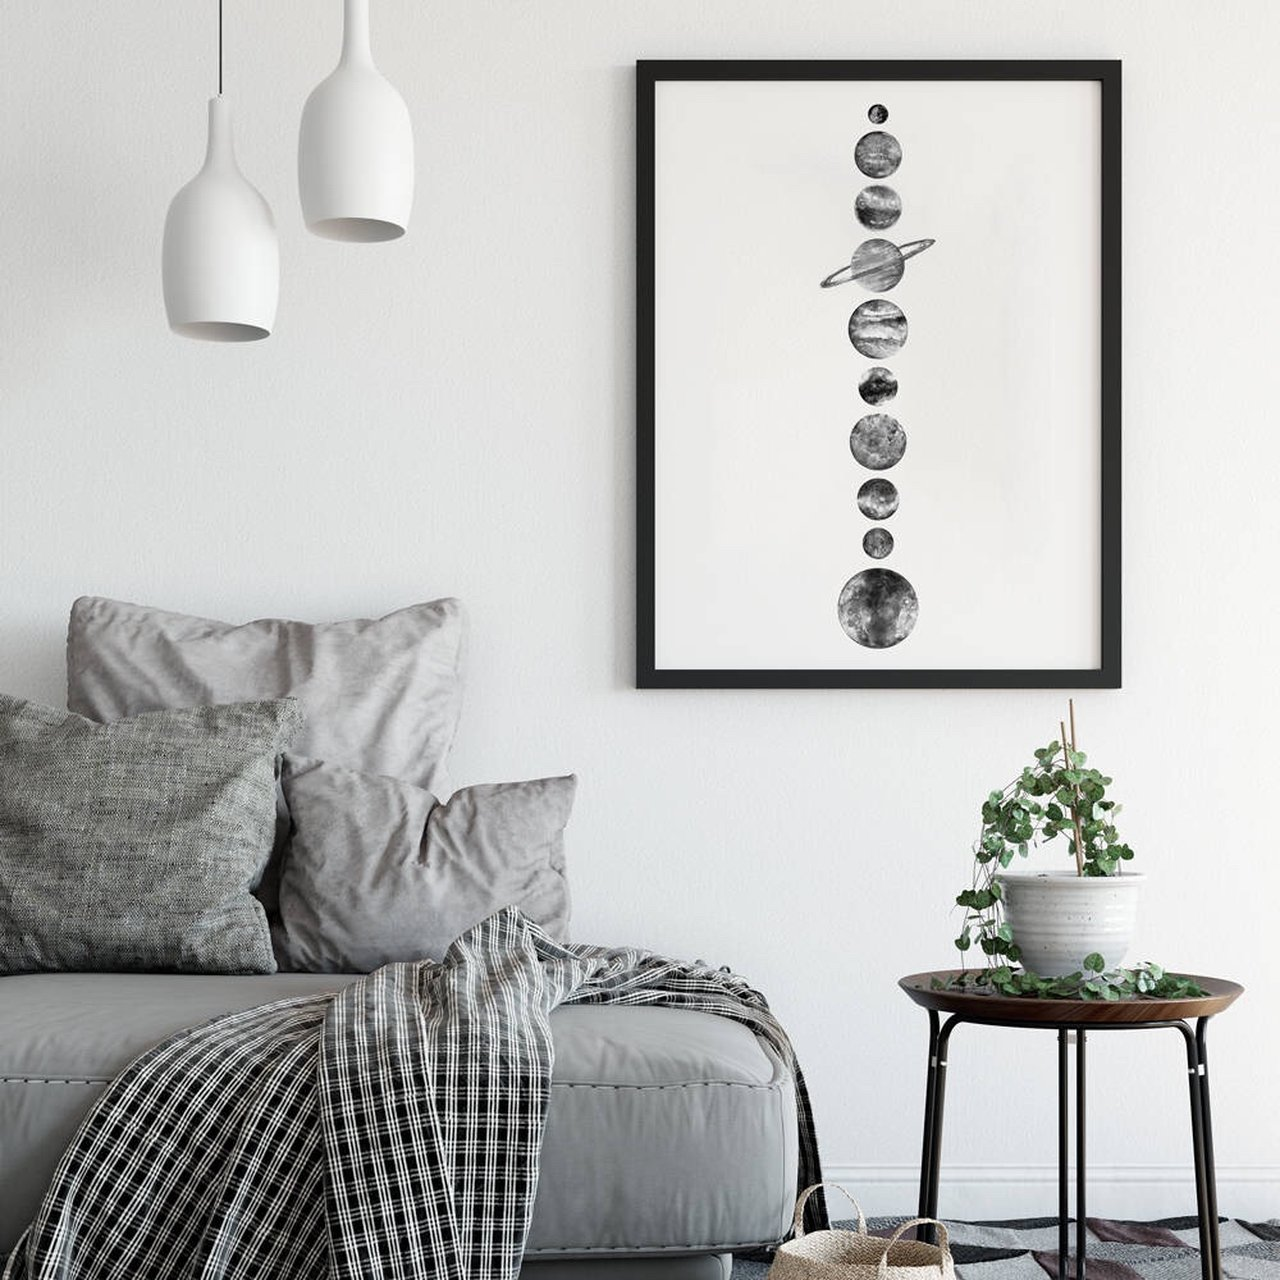 Black And White Artwork For Bedroom Listed On Depop By Disneyprint